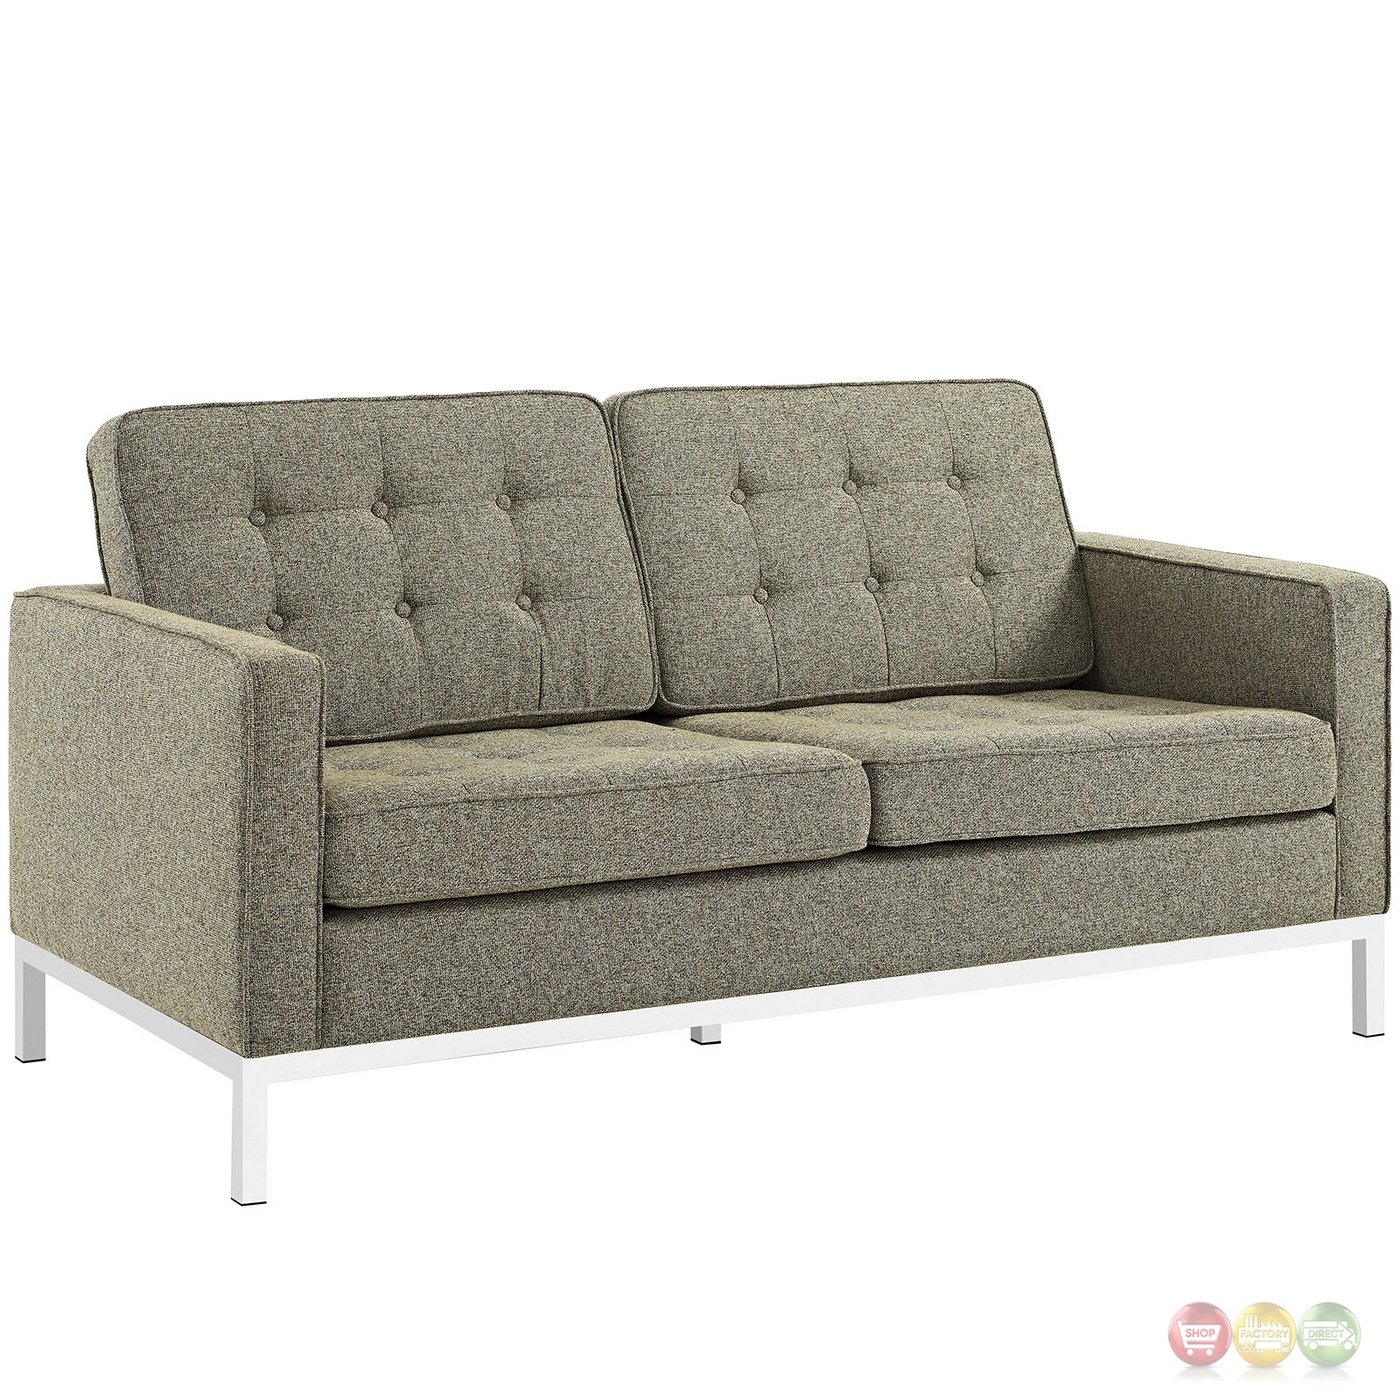 Loft Modern 3 Pc Button Tufted Upholstered Sofa Set W Steel Frame Oatmeal